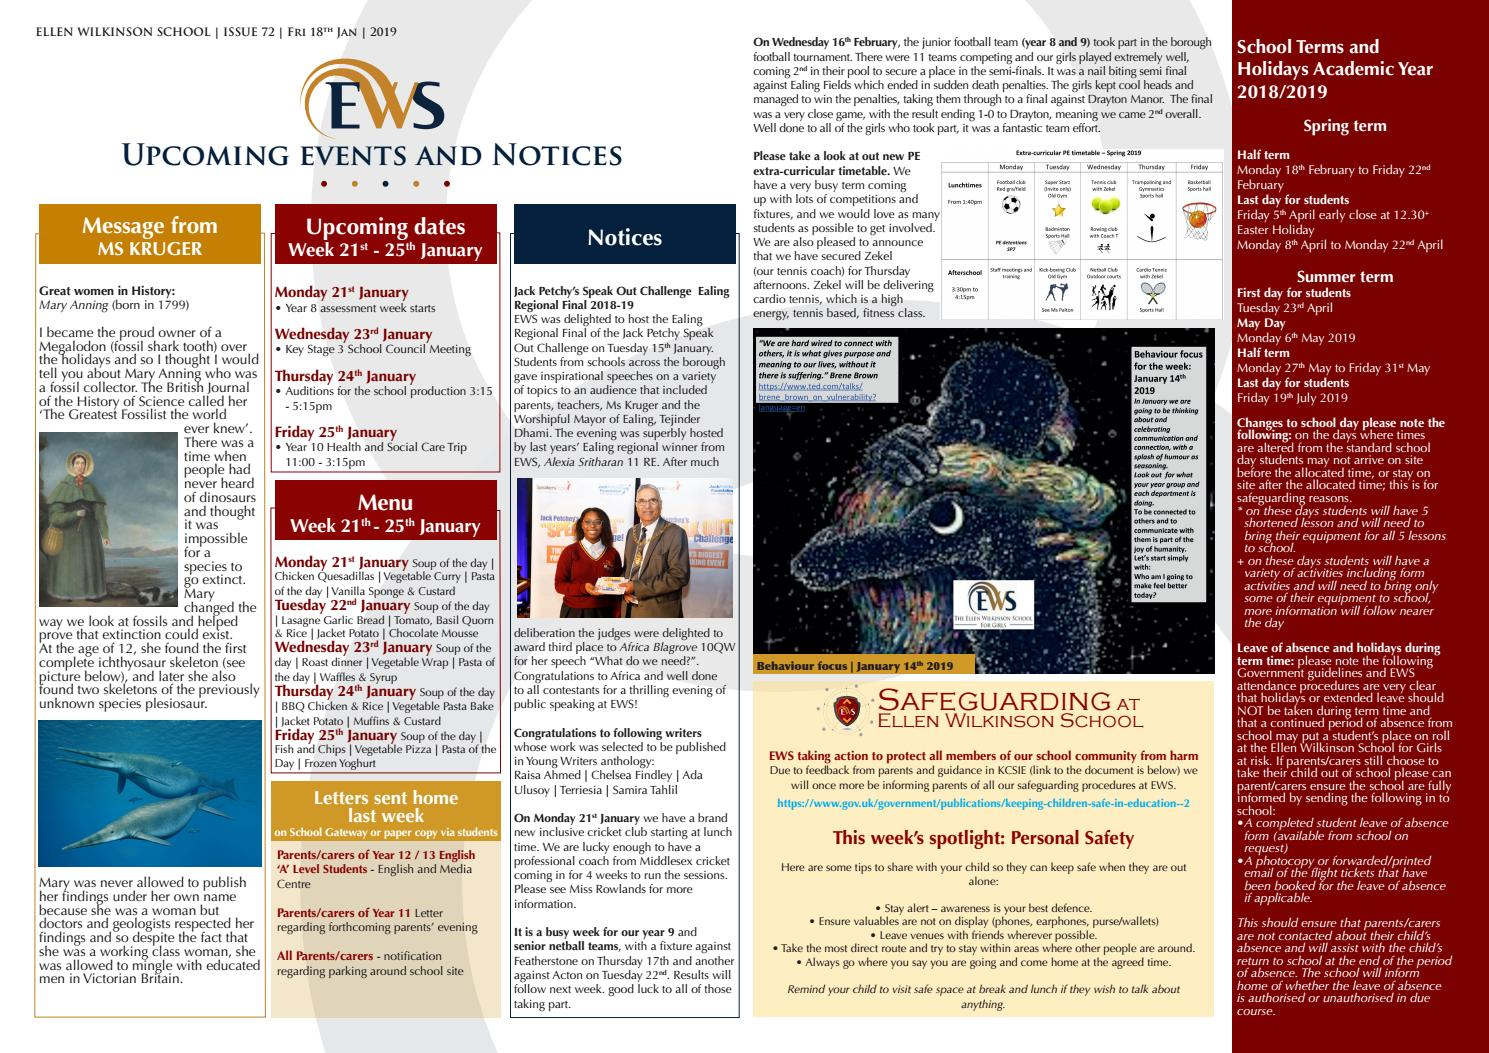 EWS This week 18 01 2019 by The Ellen Wilkinson School for Girls - issuu